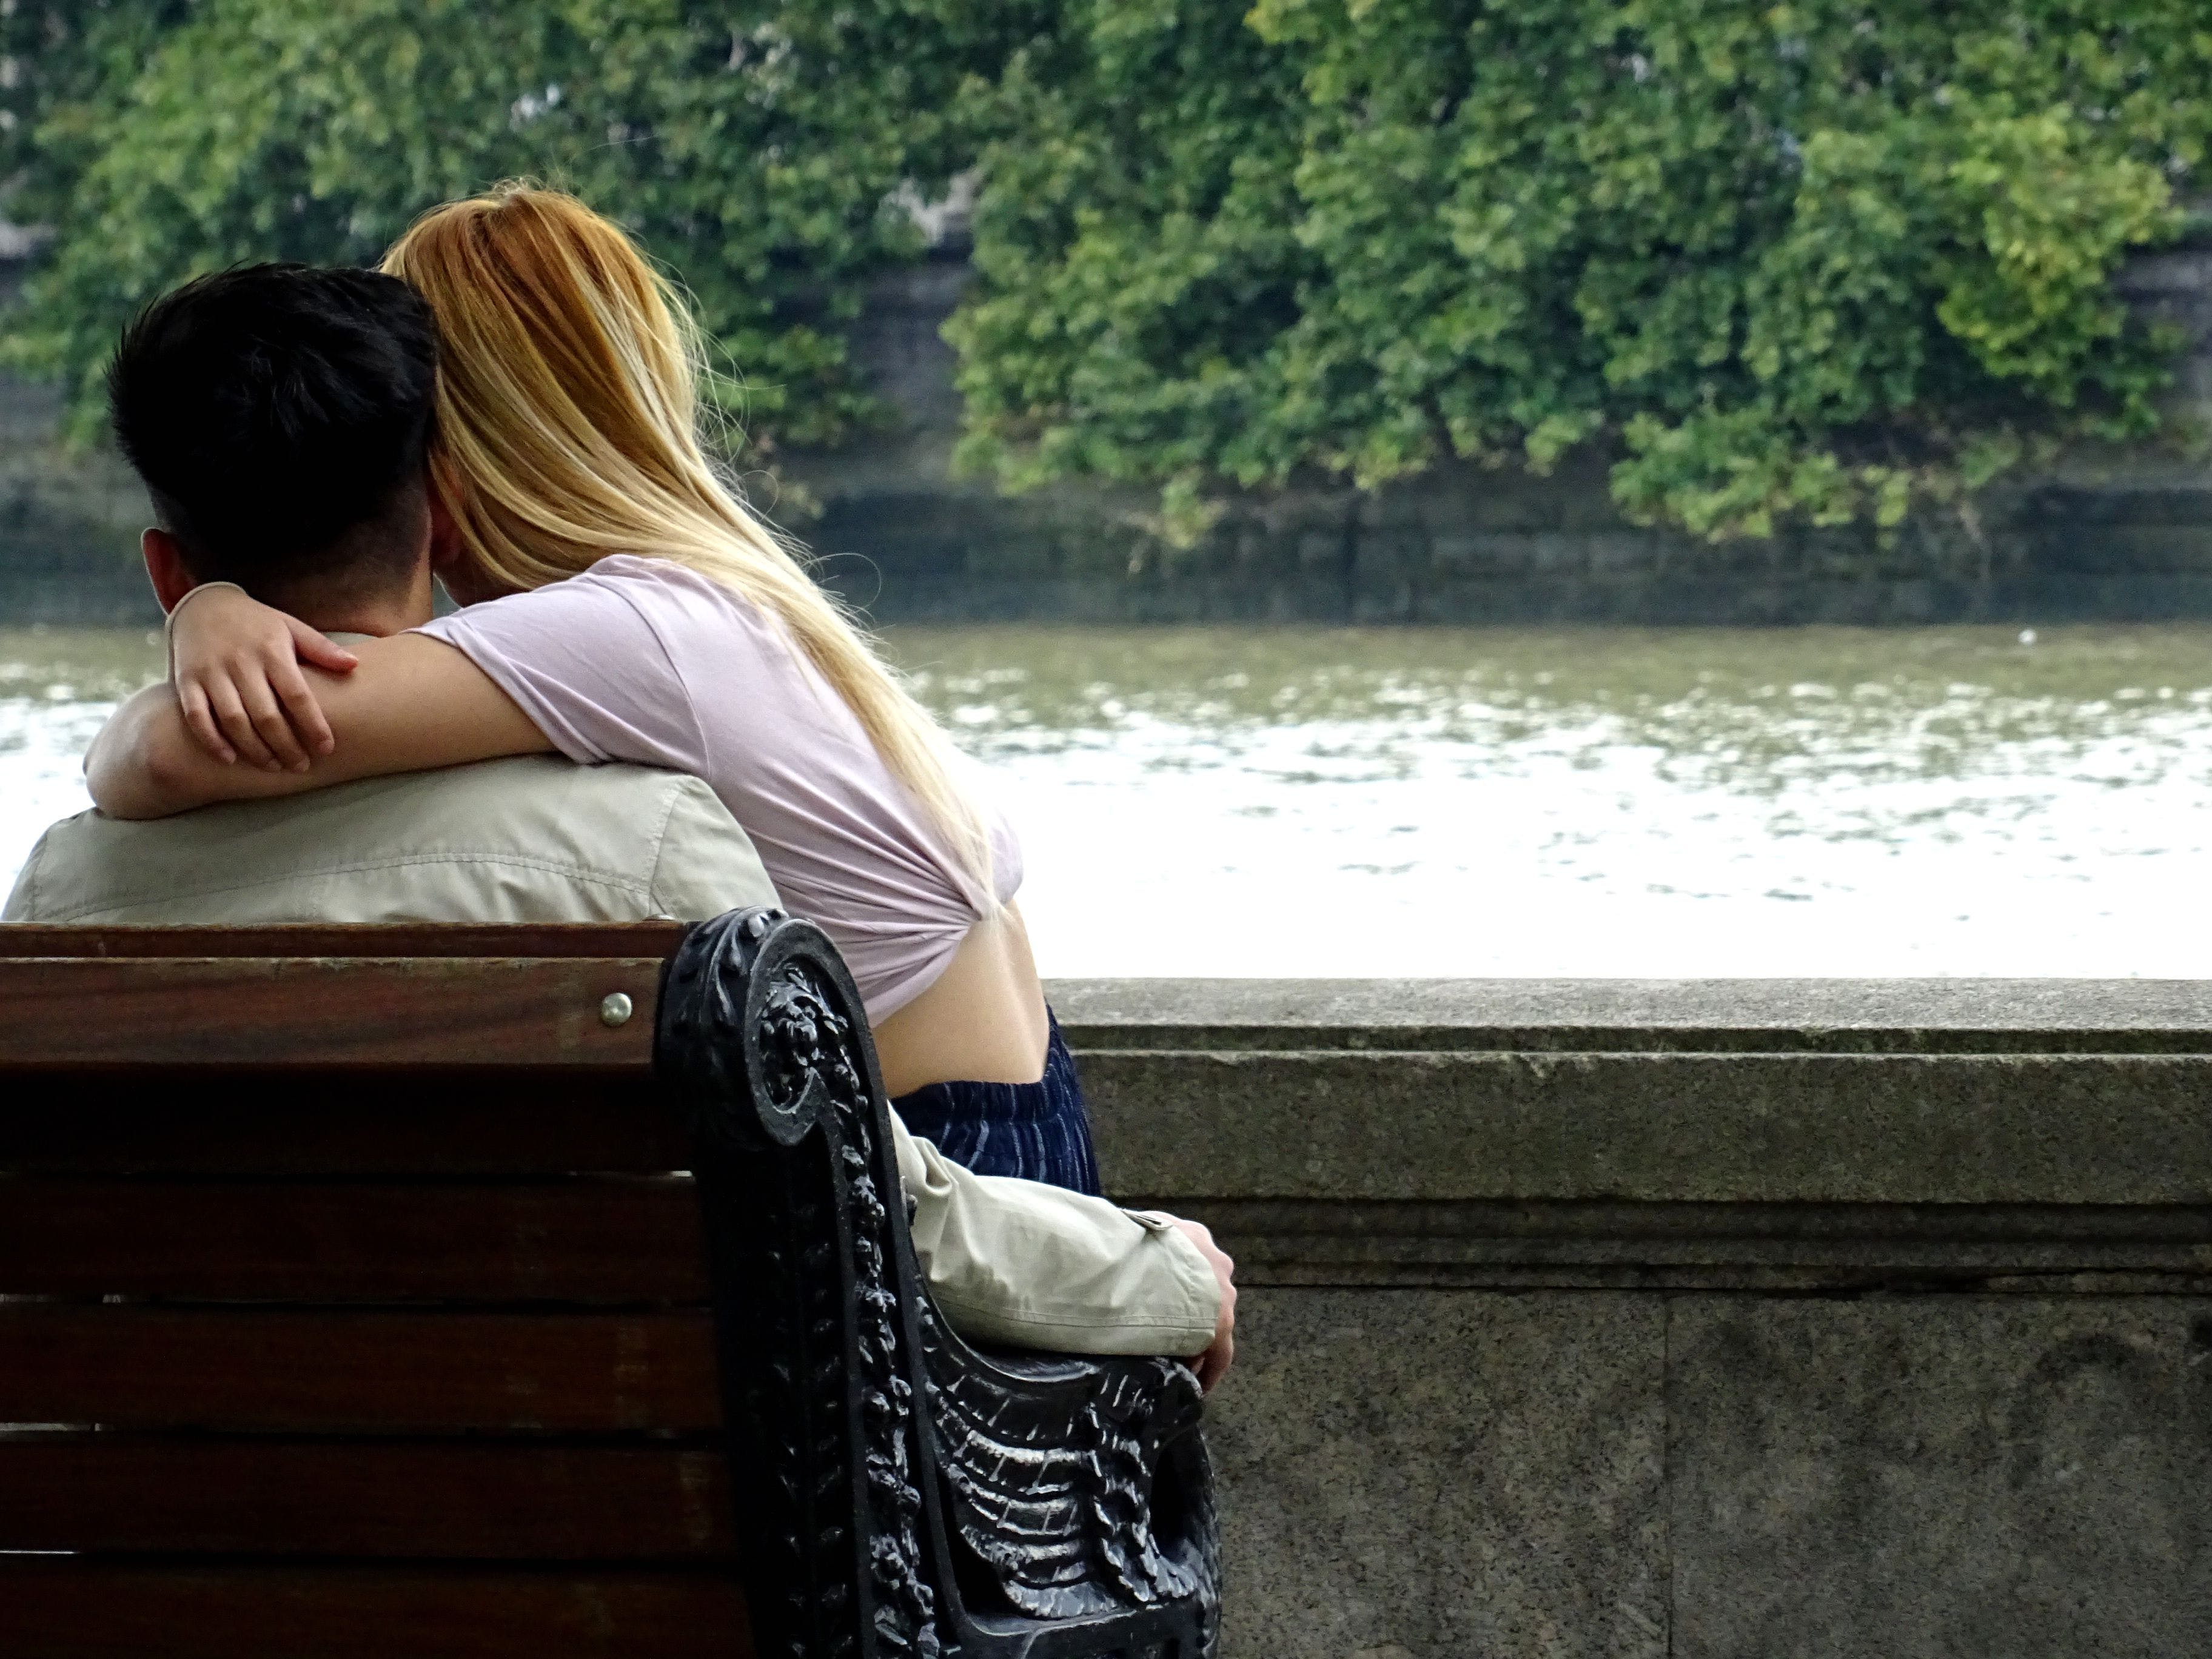 Man and Woman Sitting on Bench With River View